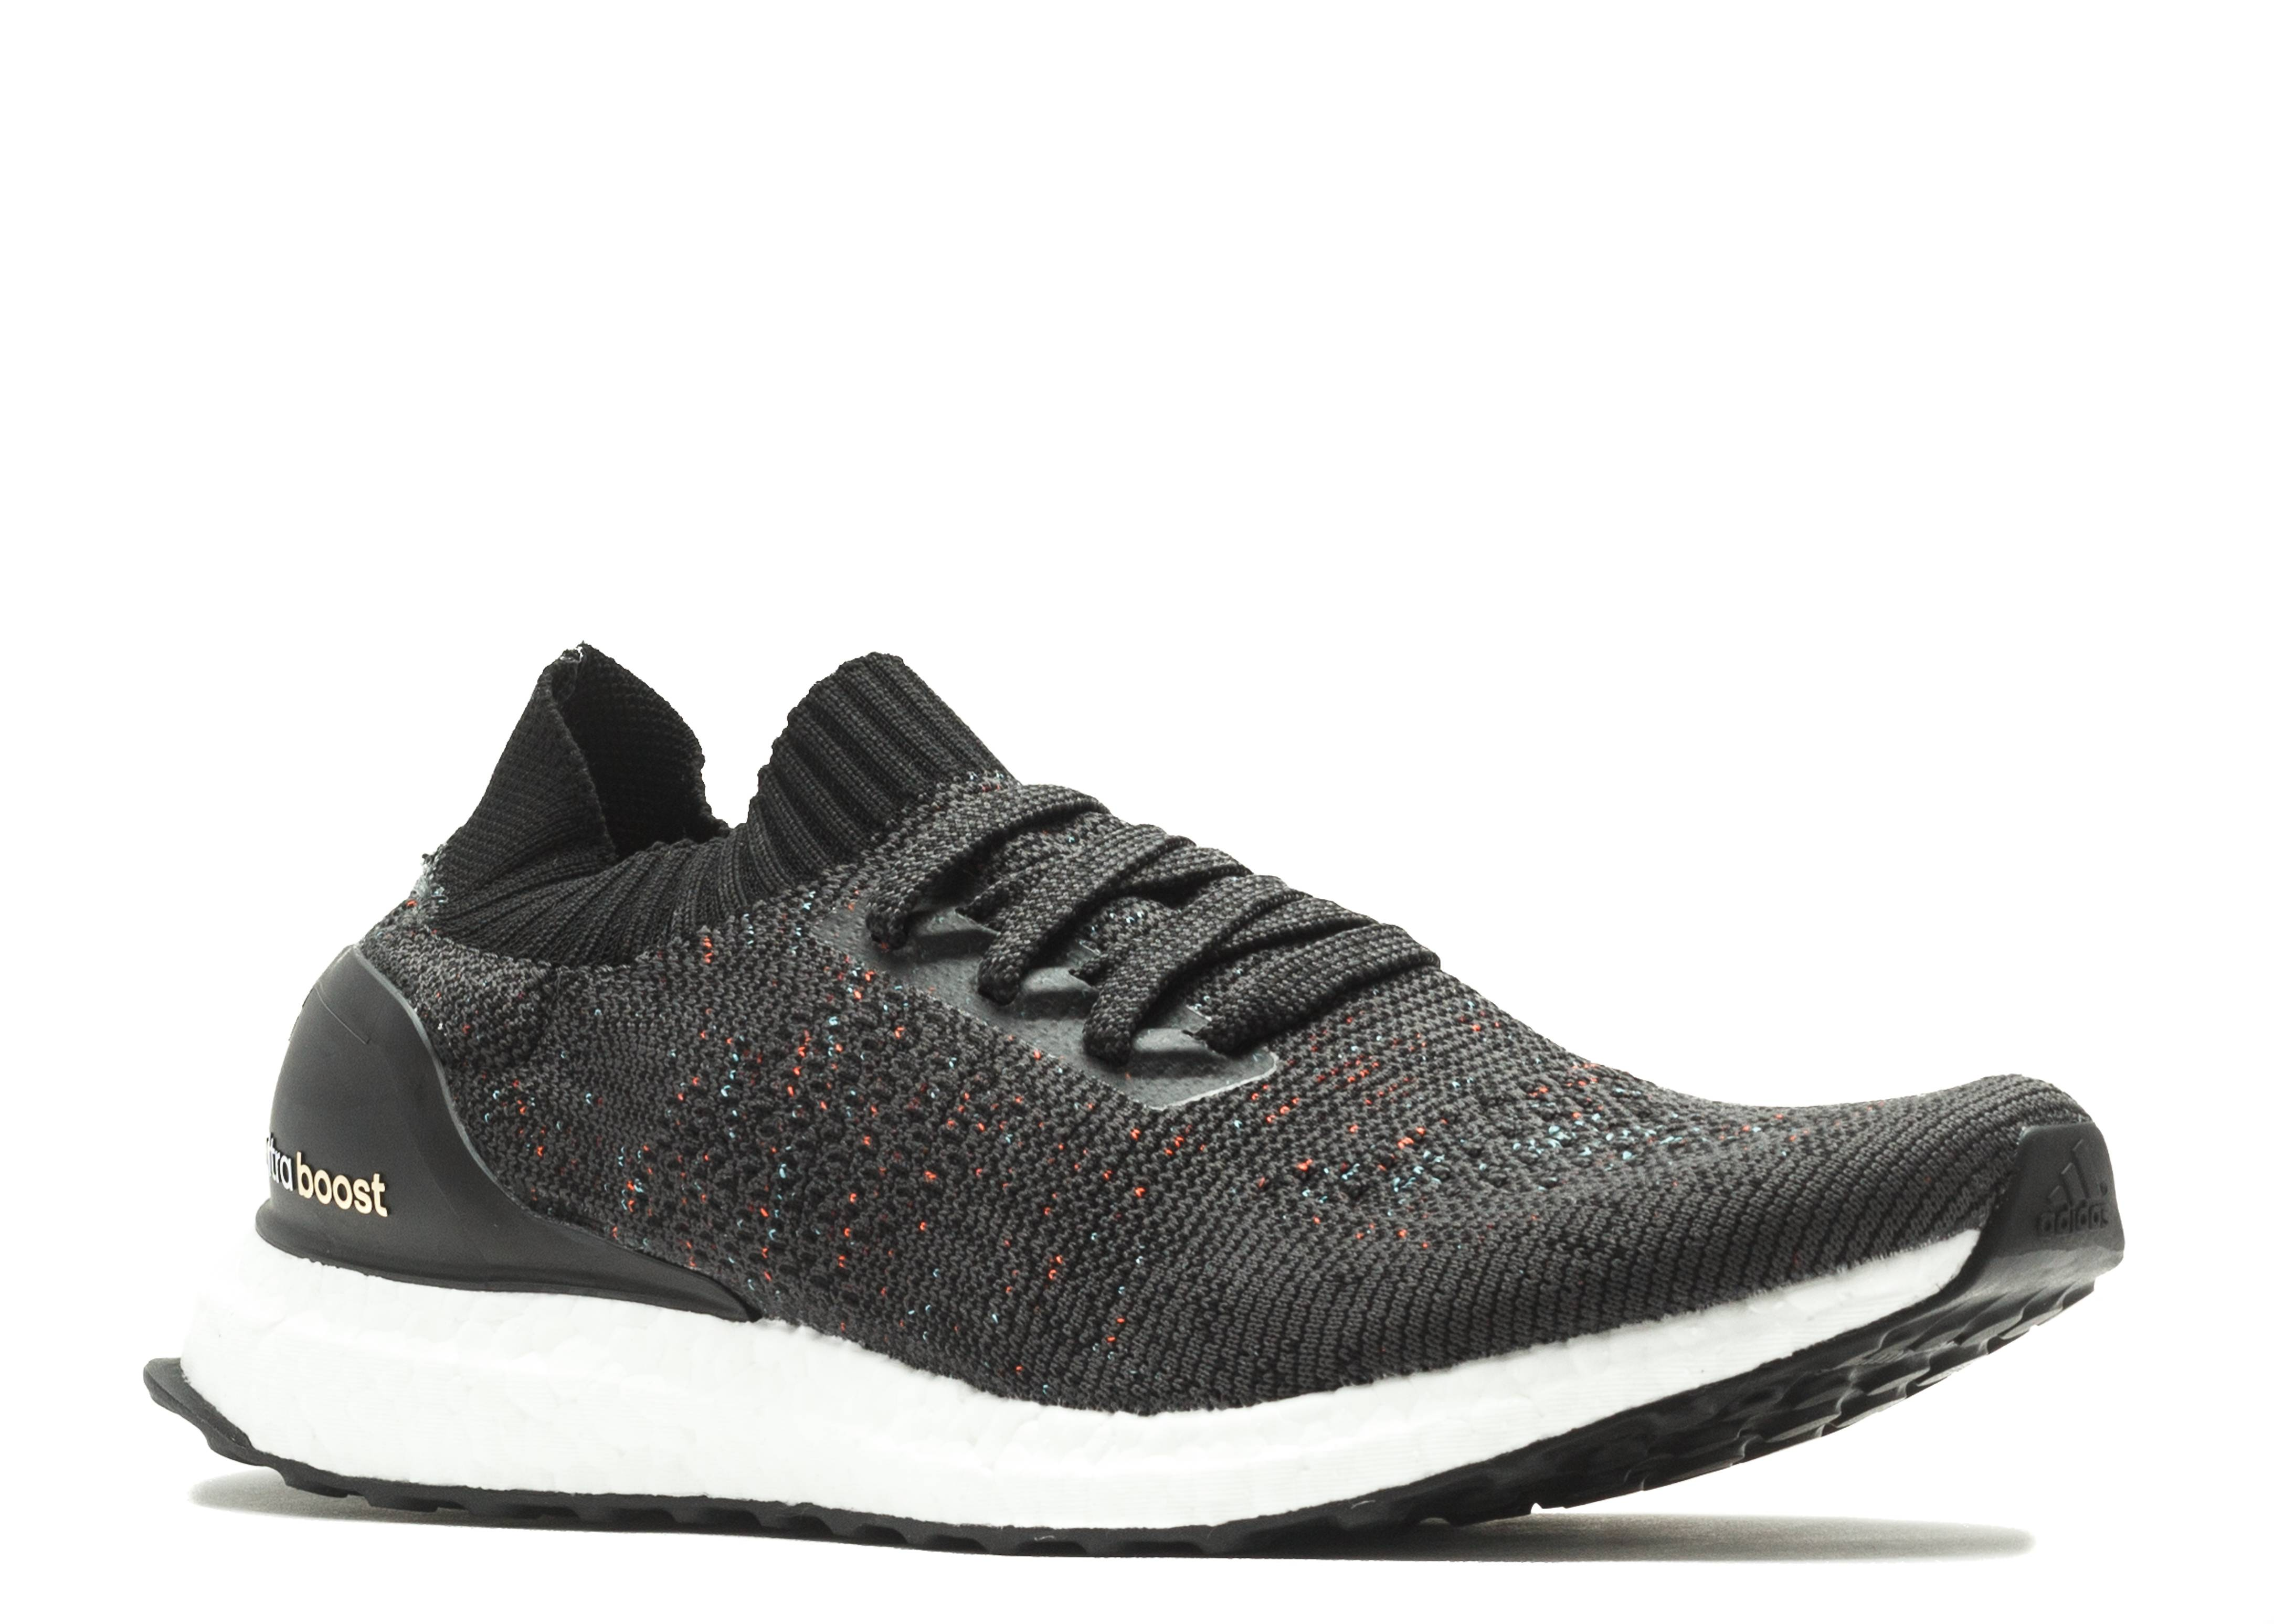 adidas Ultra Boost Uncaged Men's Running Shoes Black/Dgh